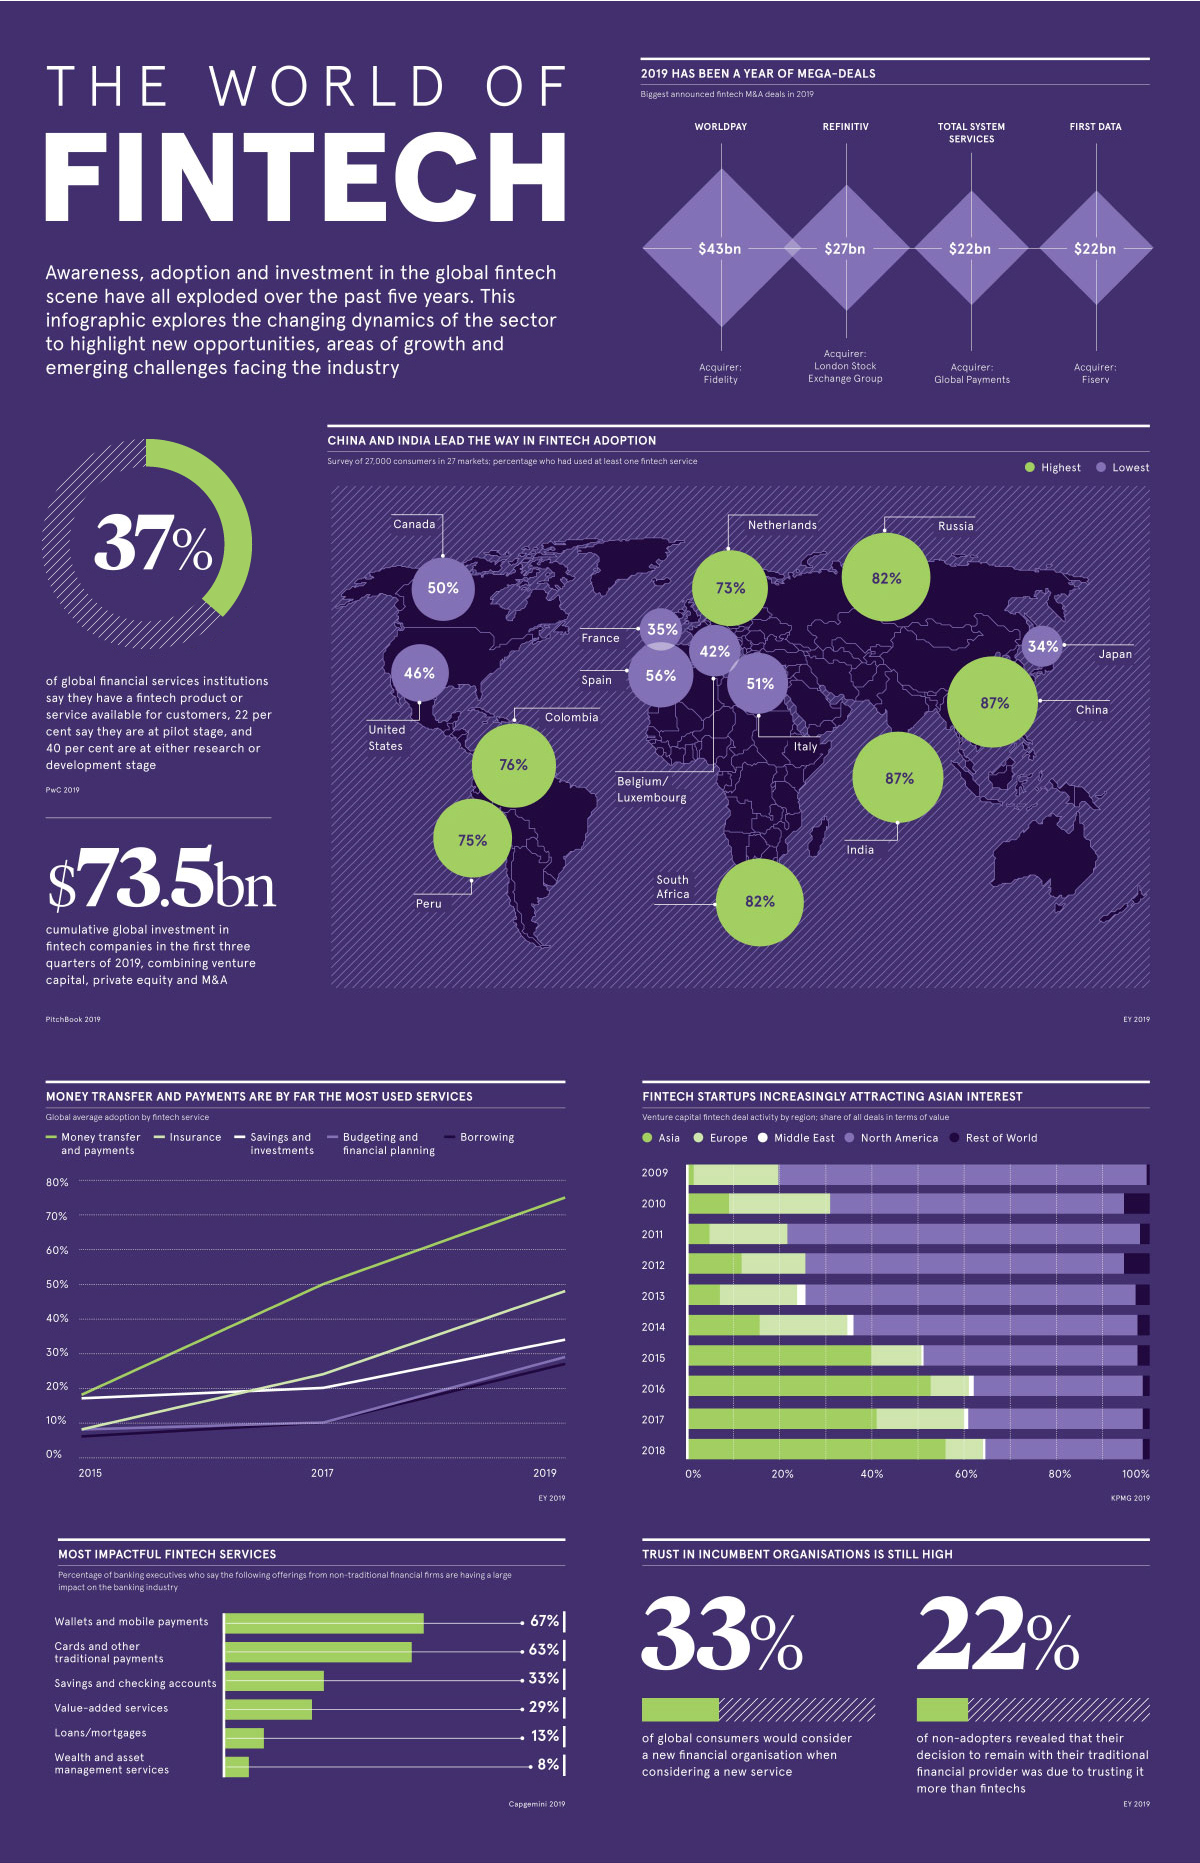 visualizing the world of fintech